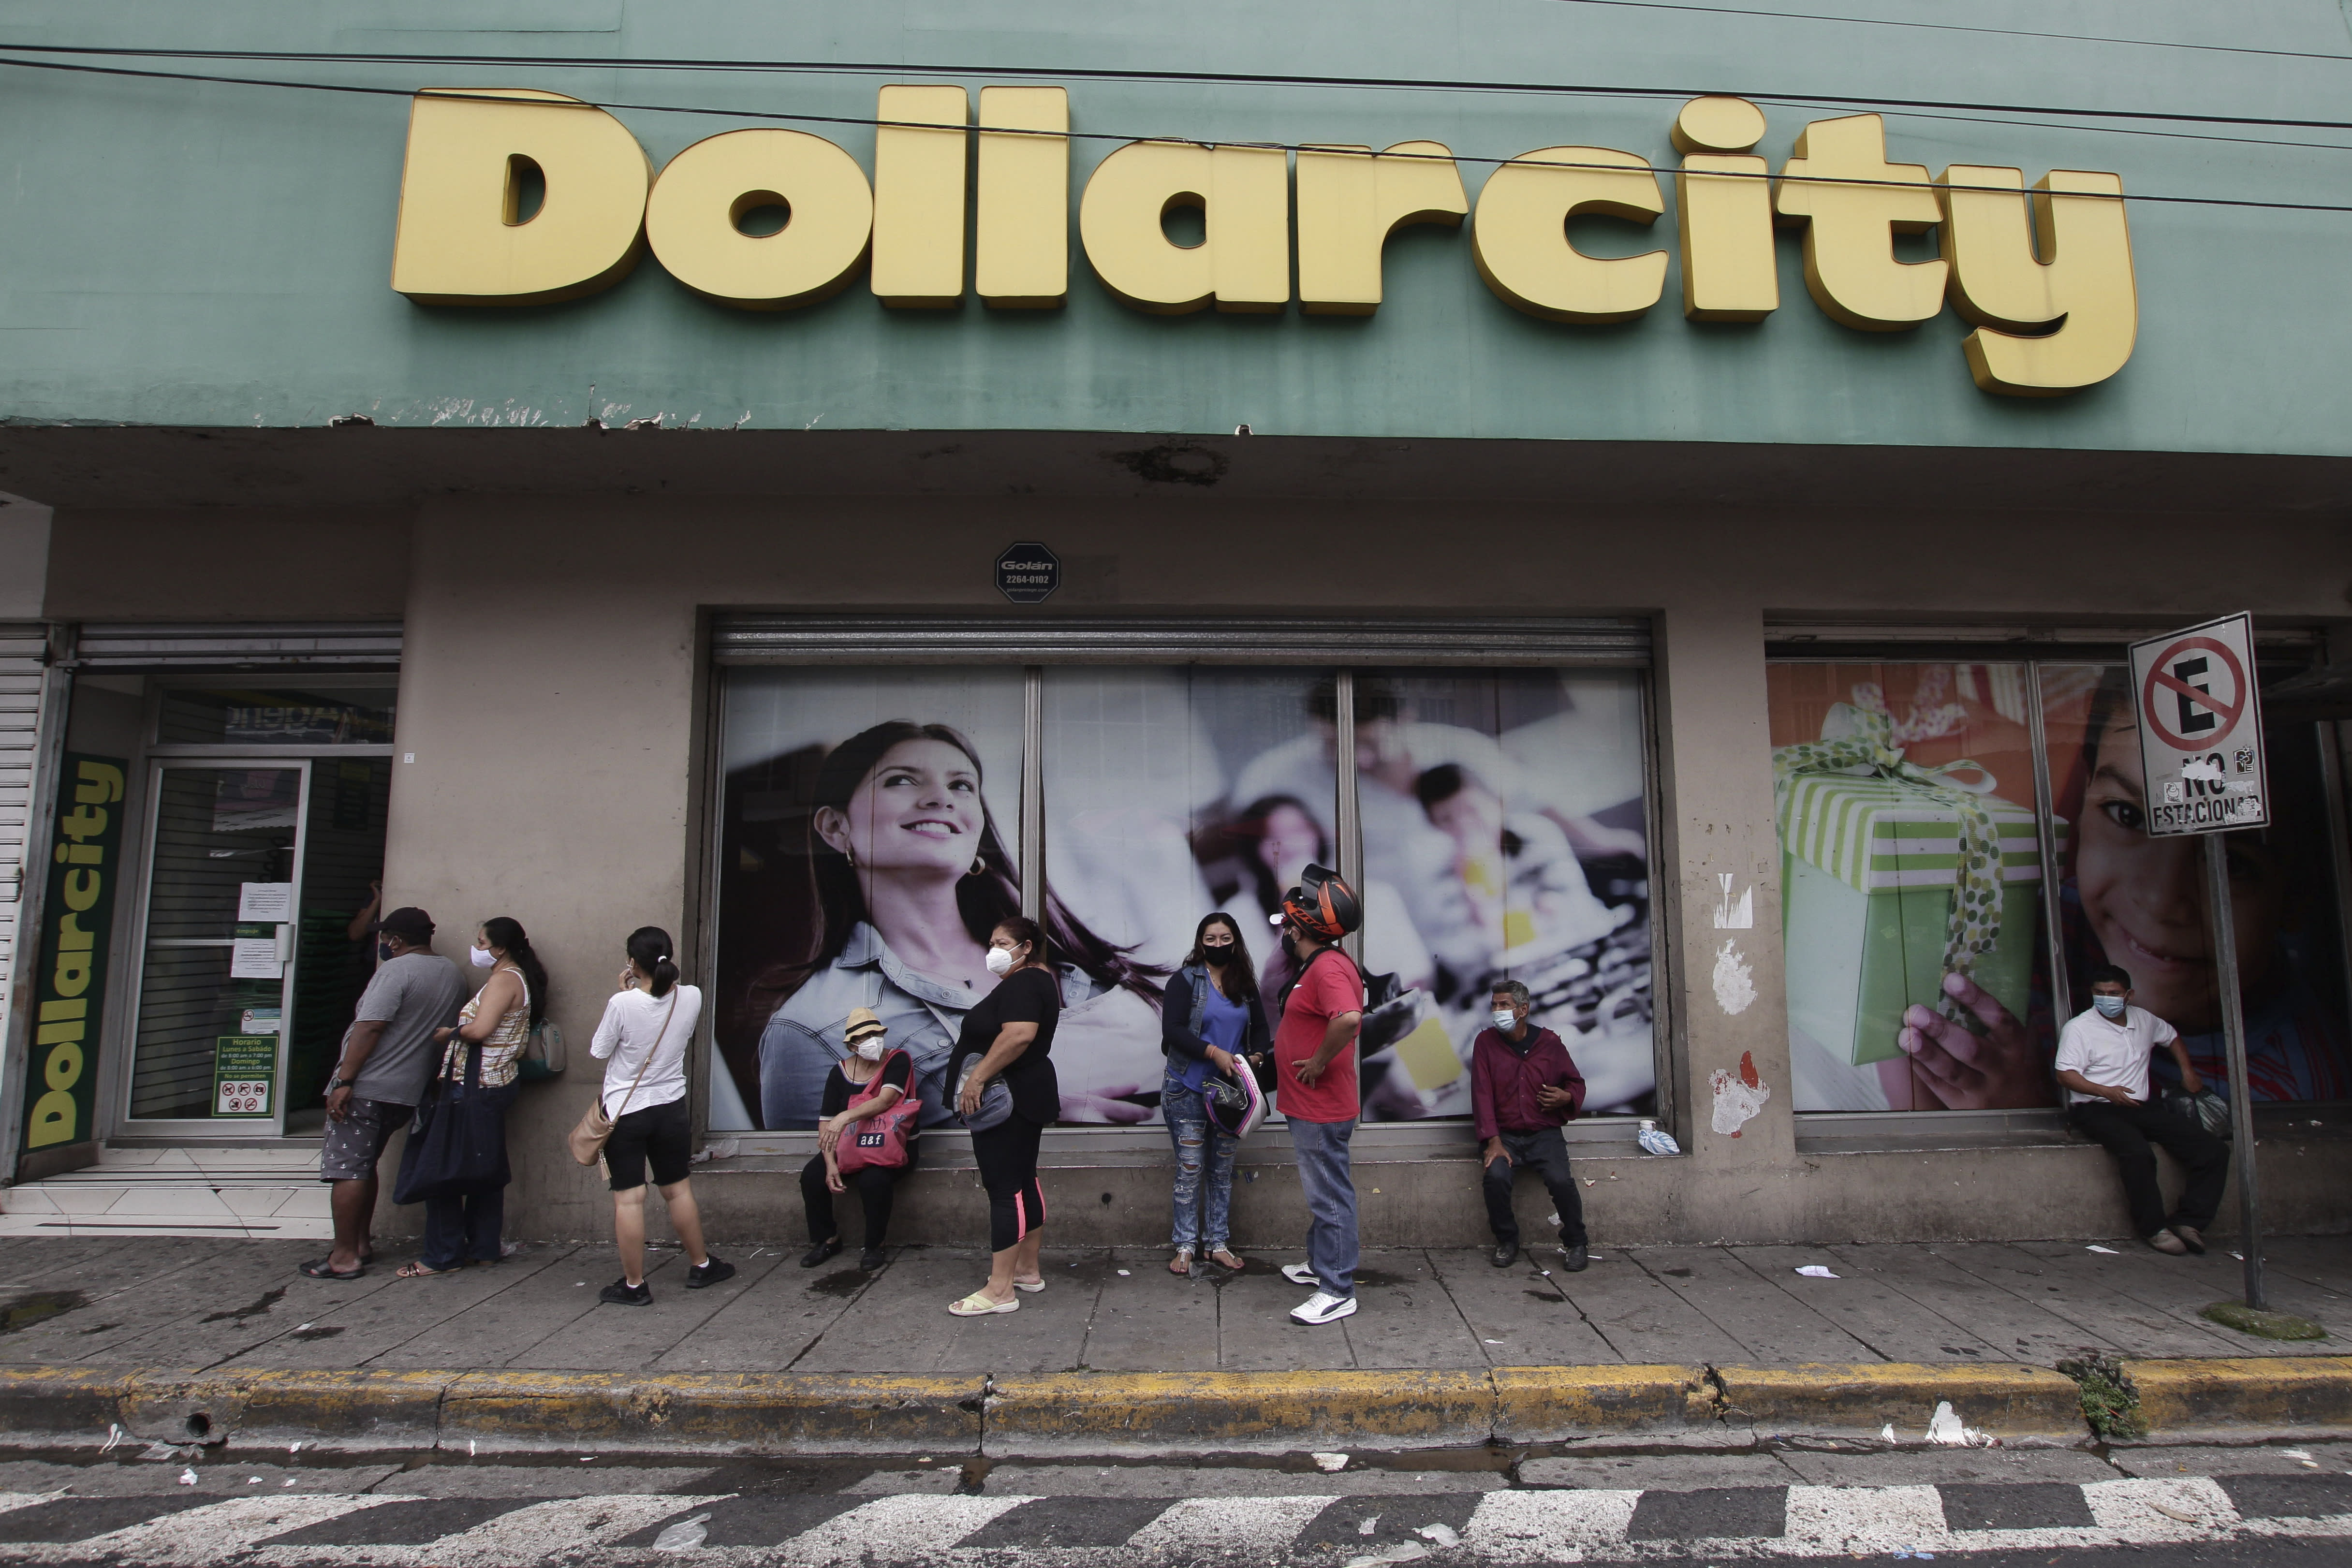 Shoppers, wearing protective face masks, form a line outside Dollarcity in San Salvador, El Salvador, Thursday, Aug. 6, 2020, amid the new coronavirus pandemic. For months, the strictest measures confronting the COVID-19 pandemic in Latin America seemed to keep infections in check in El Salvador, but a gradual reopening combined with a political stalemate has seen infections increase nearly fourfold. (AP Photo/Salvador Melendez)